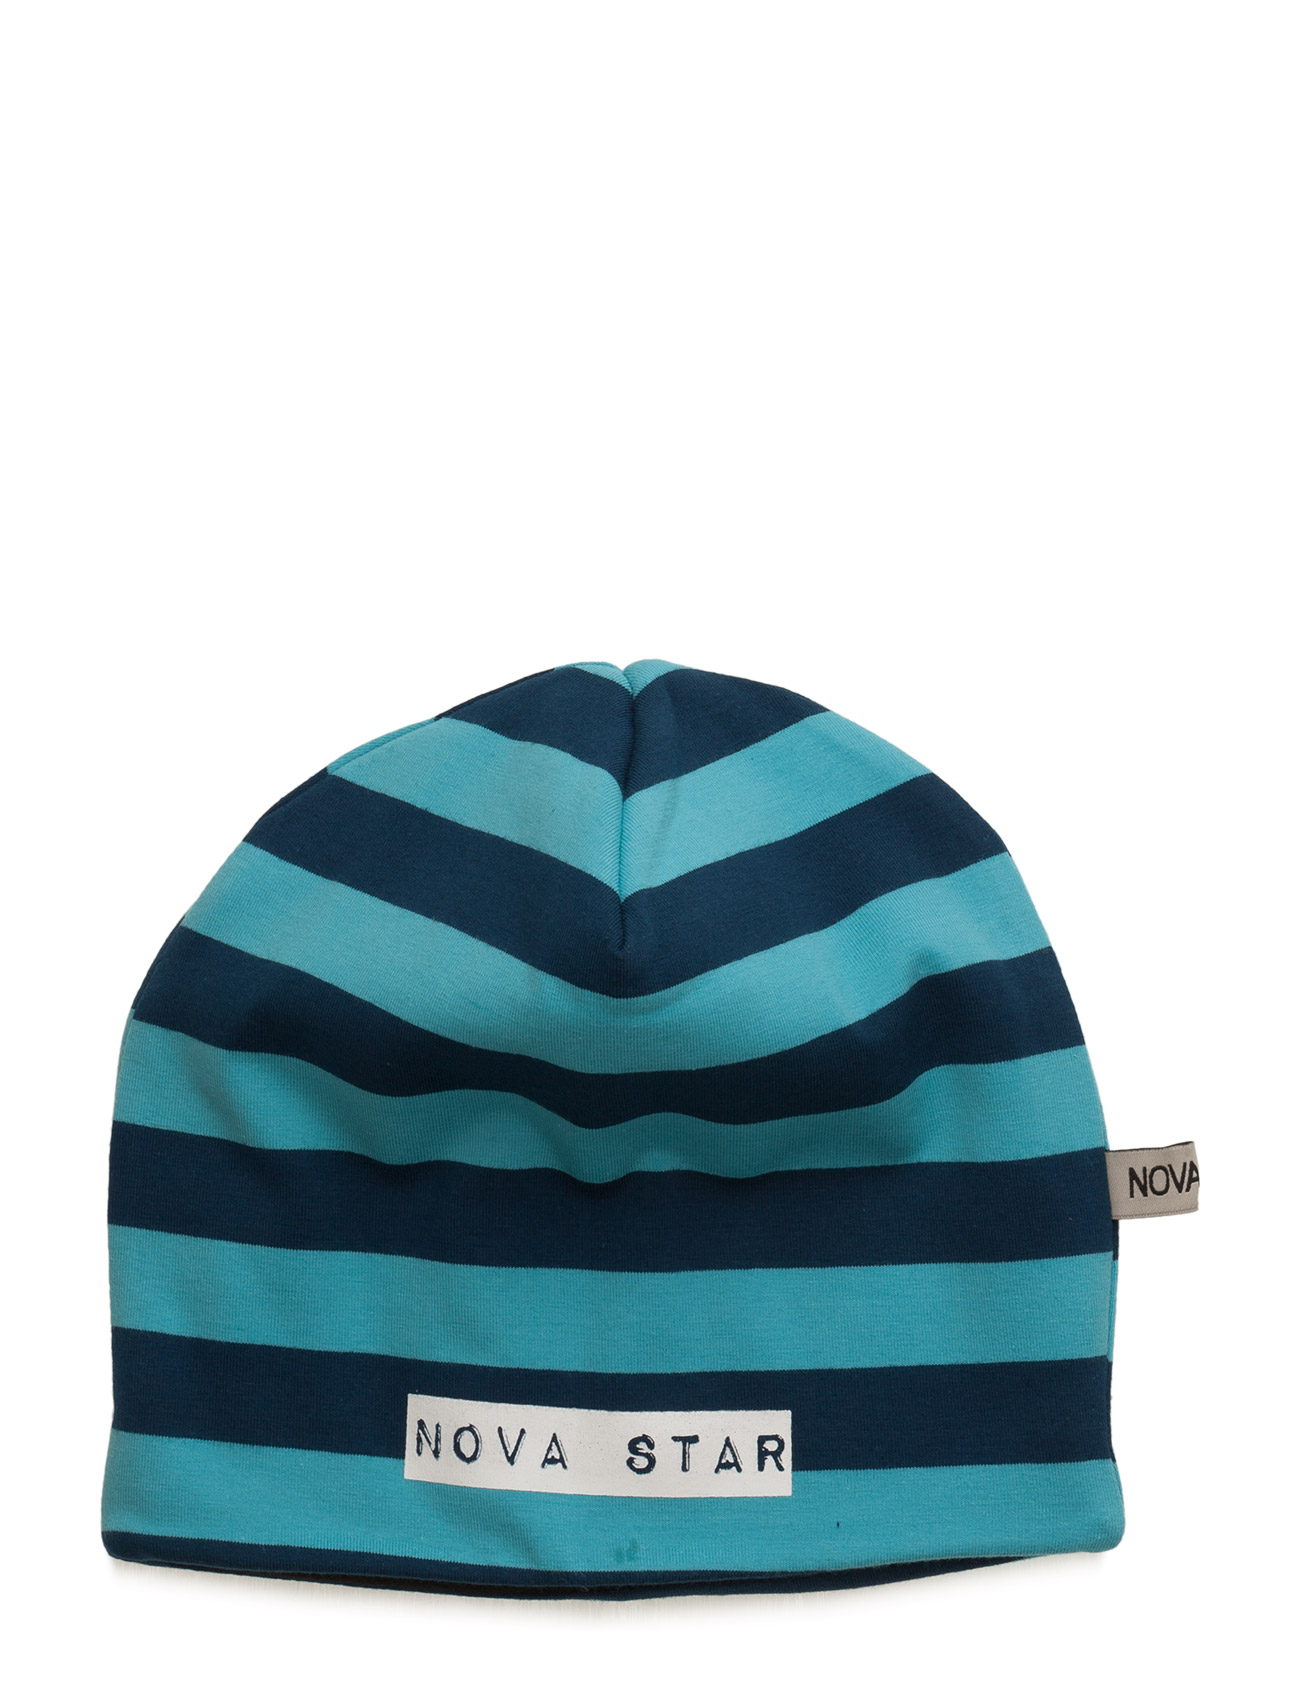 W-Beanie Striped Blue NOVA STAR Tilbehør til  - MoteJakten.no